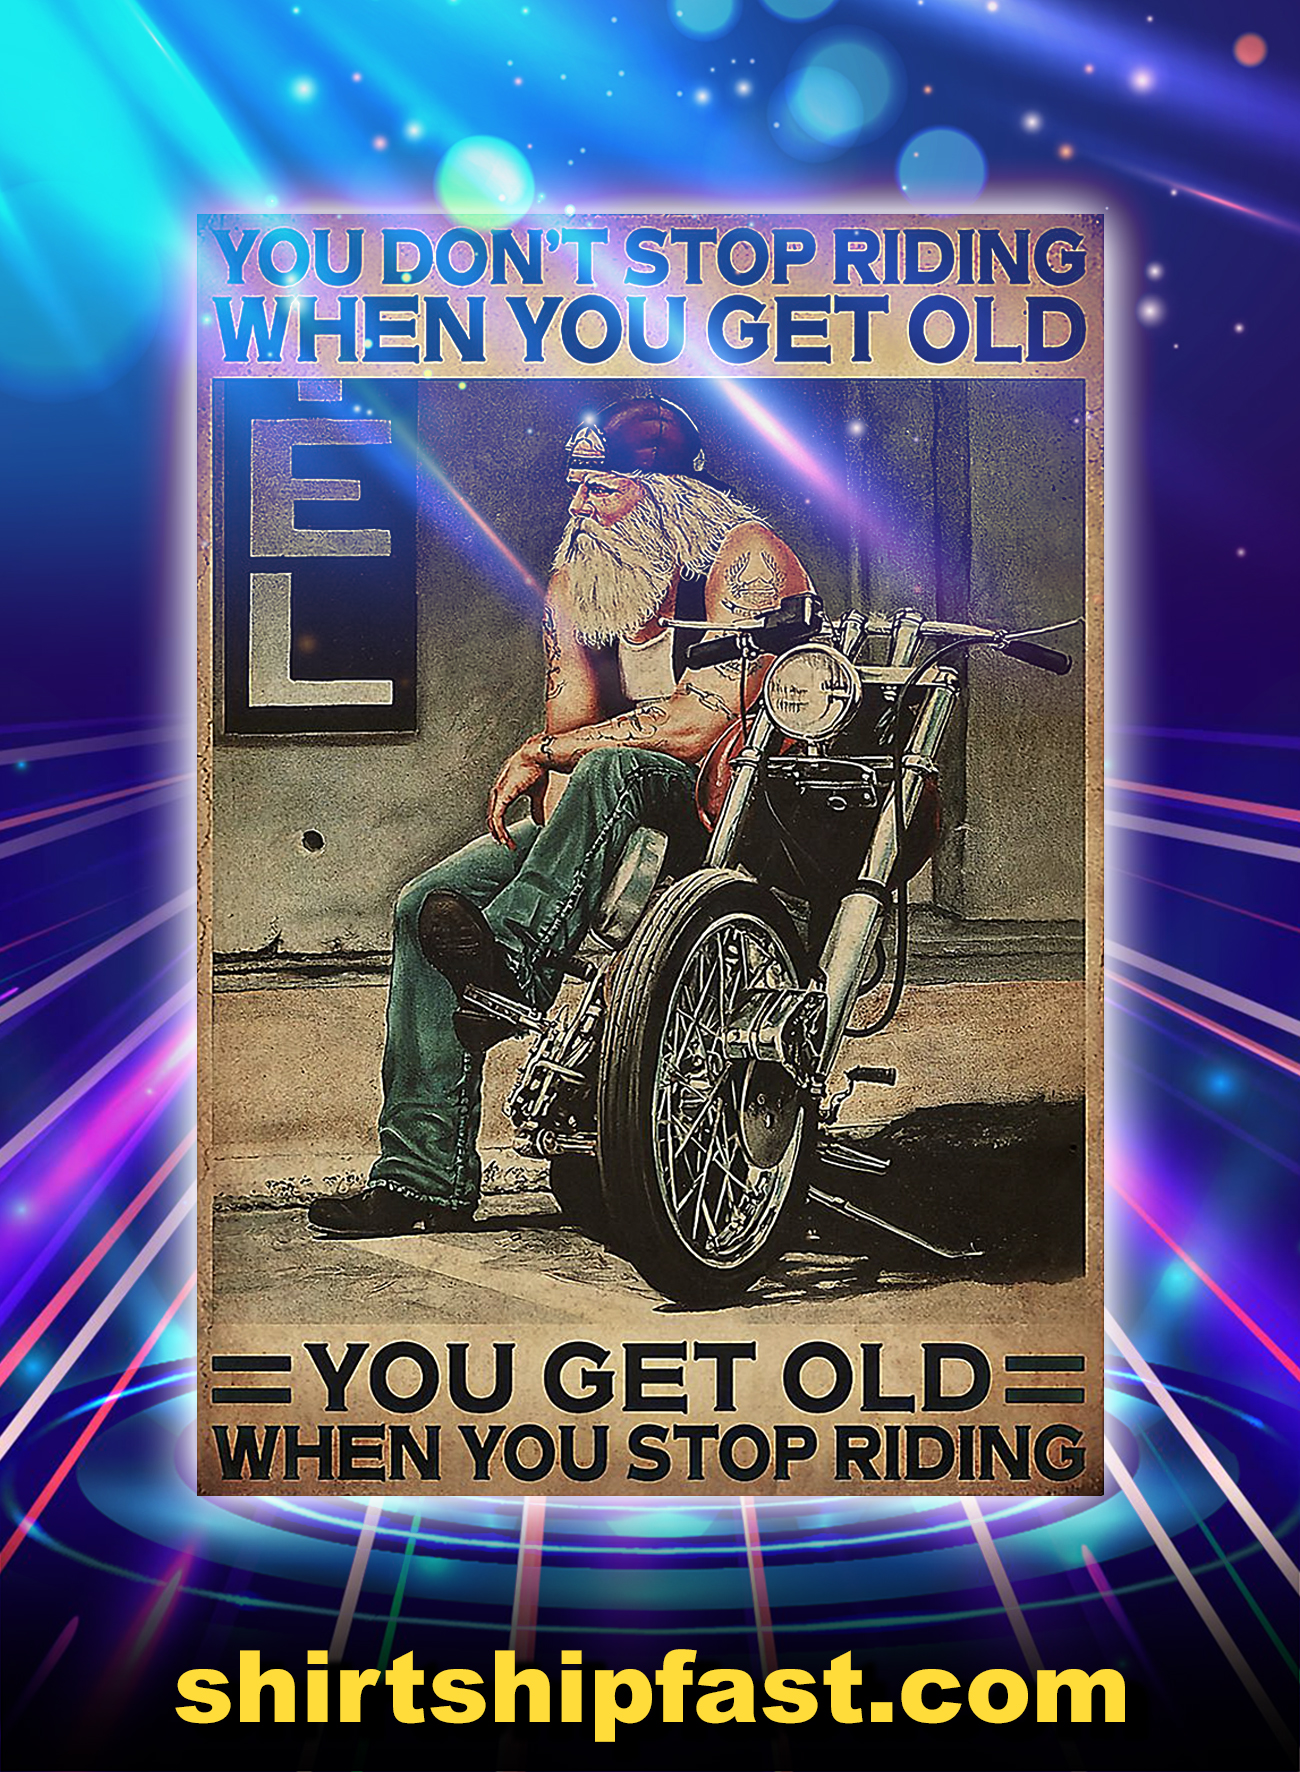 Motorcycle you don't stop racing when you get old poster - A4